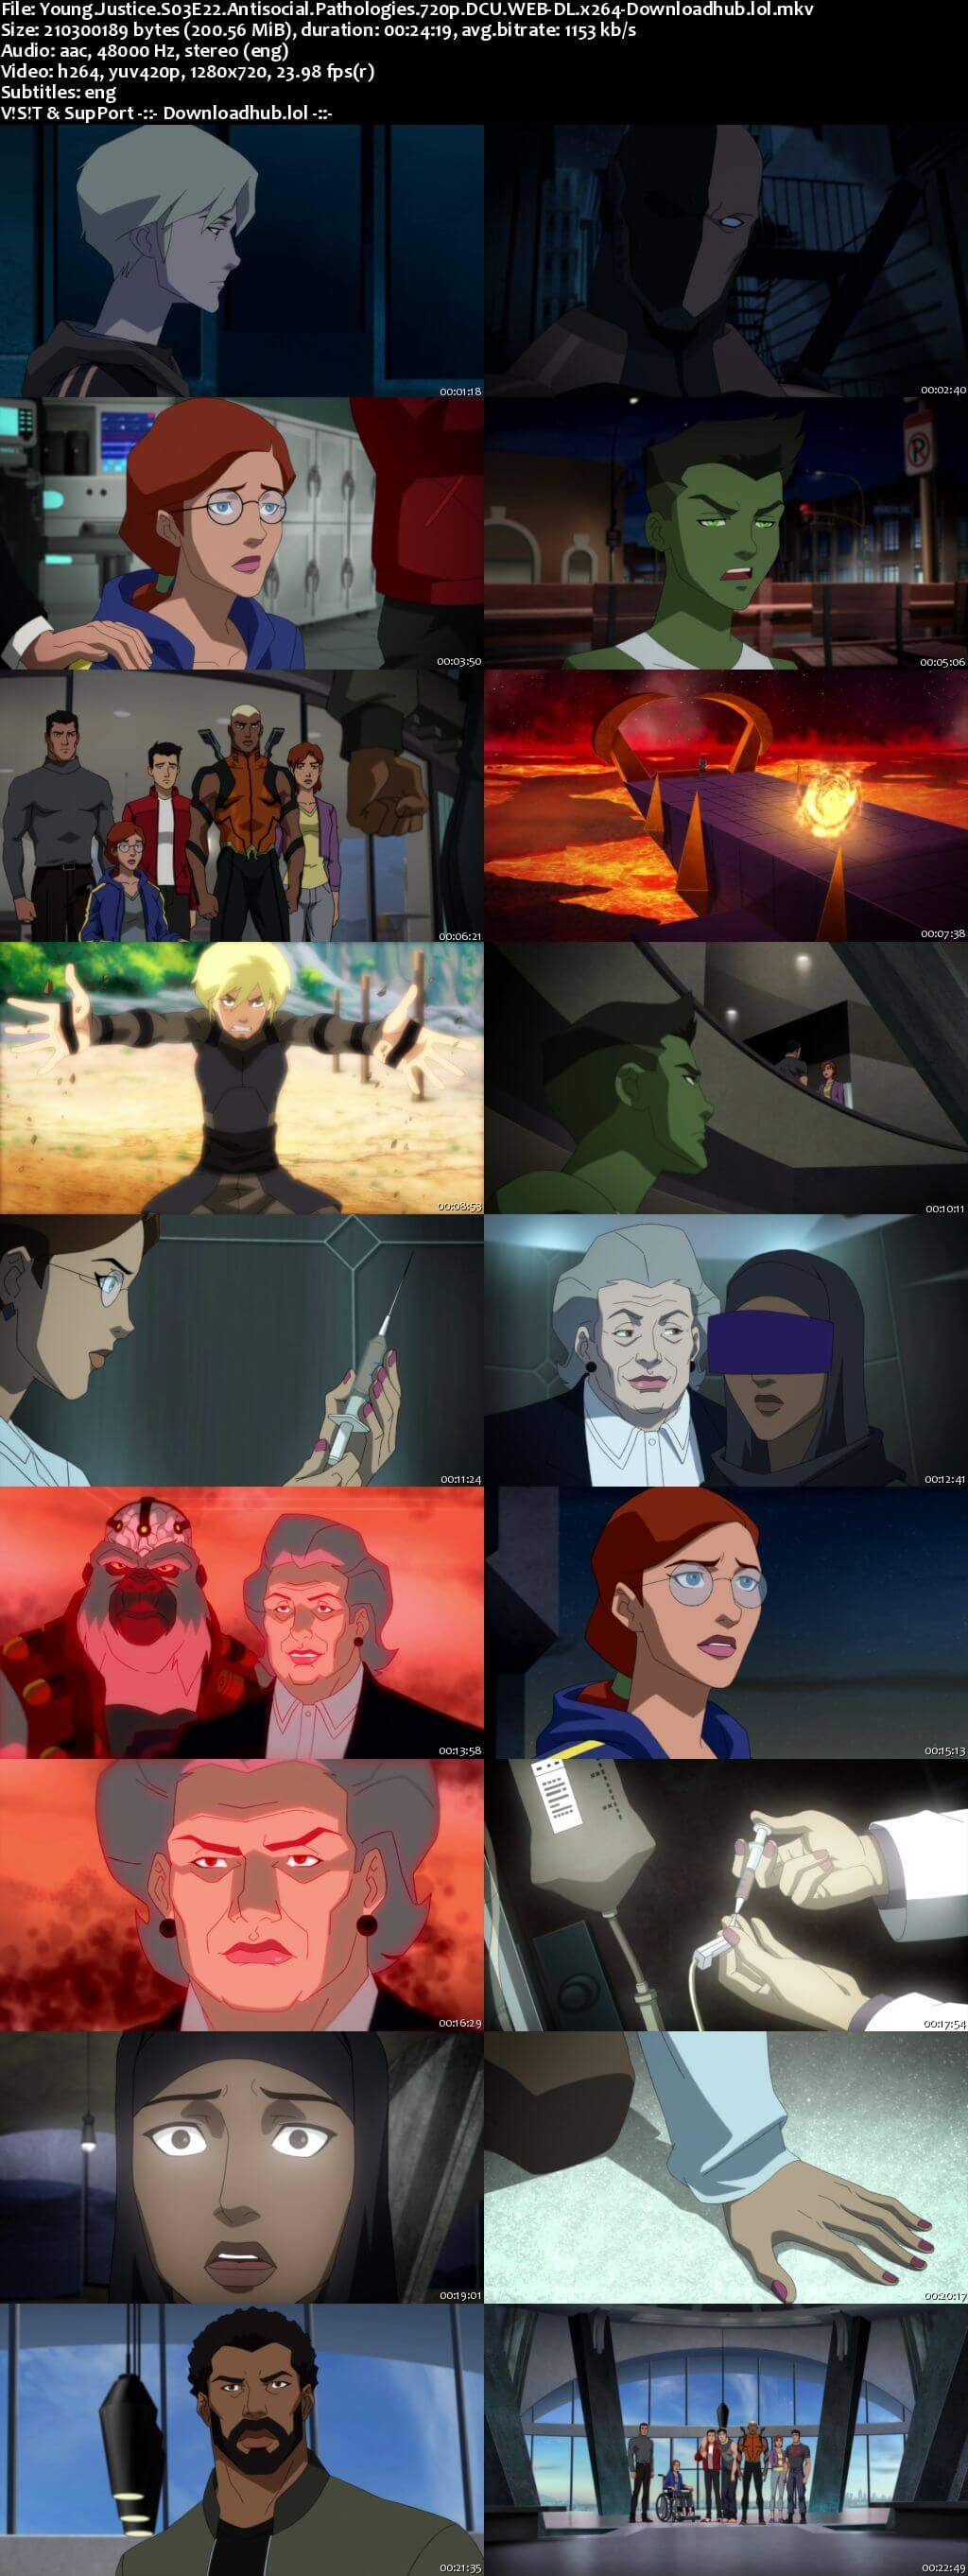 Young Justice S03E22 200MB DCU WEB-DL 720p ESubs